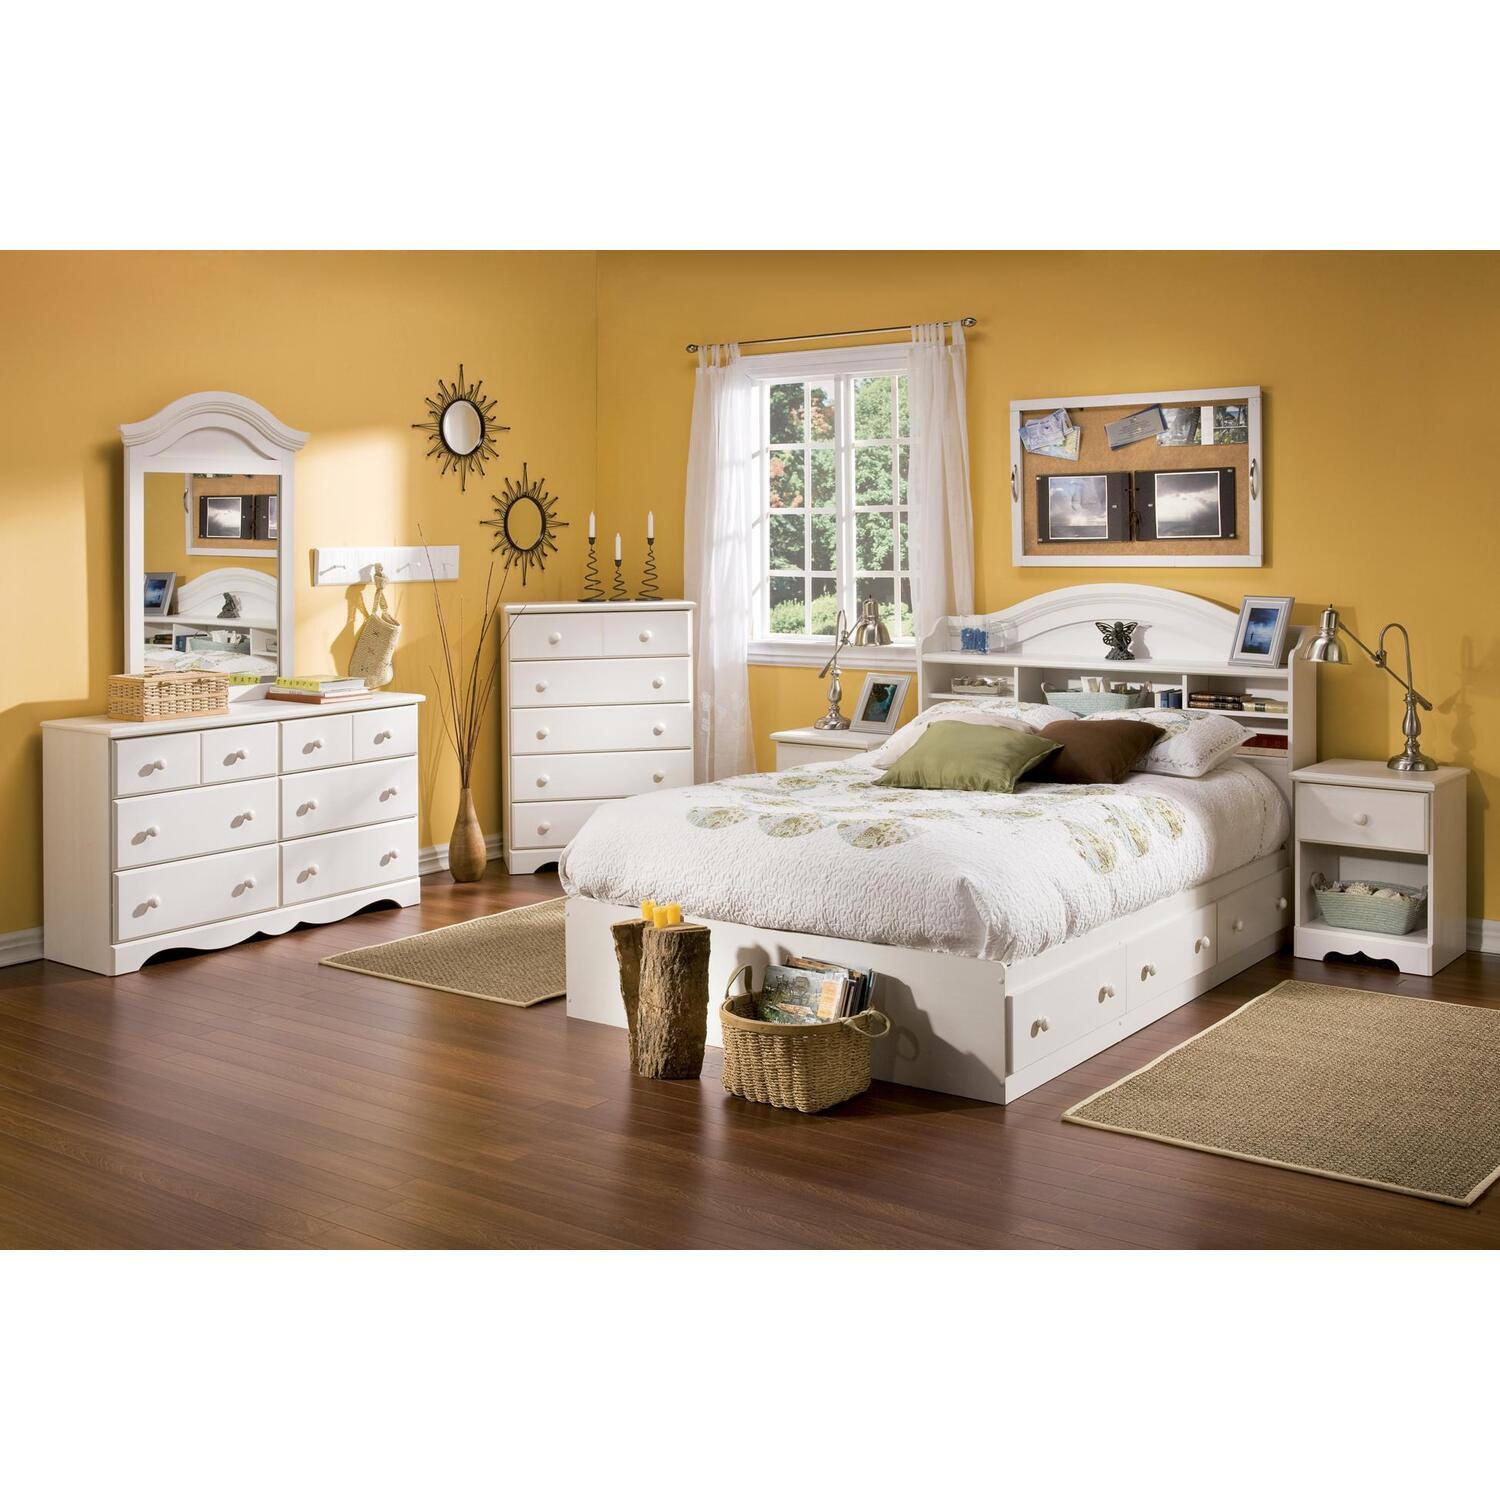 South shore summer breeze full 7 piece bedroom set in - South shore 4 piece bedroom furniture set ...